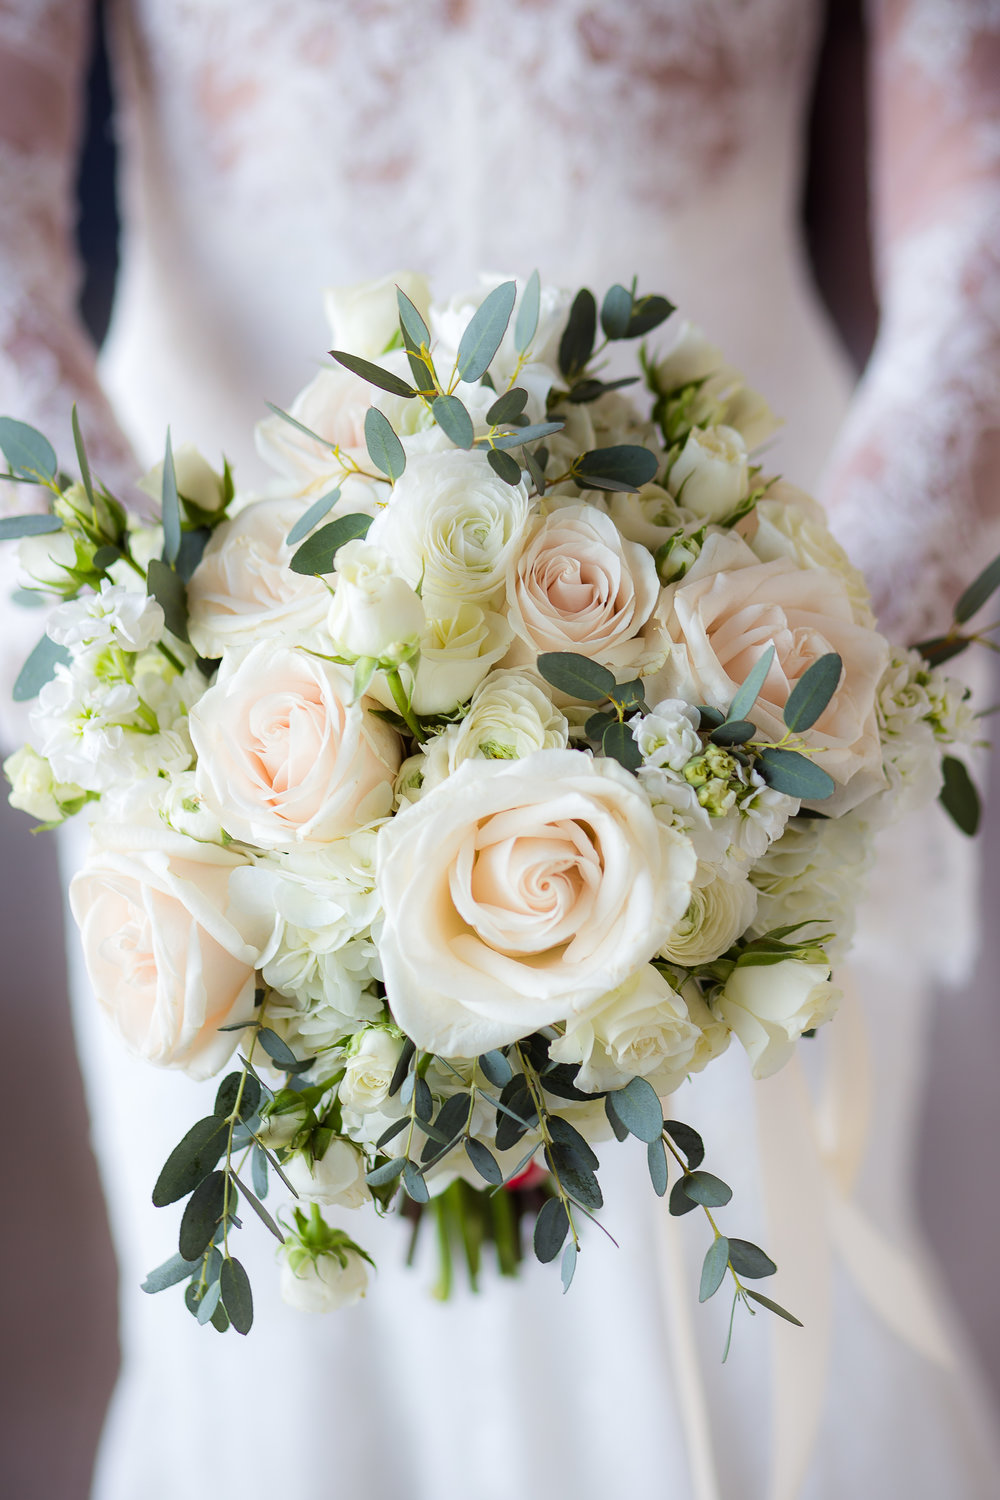 White, ivory, and green bridal bouquet.      Styled Wedding Shoot inspired by French Blue.    Las Vegas Wedding Planner  Andrea Eppolito .  Photography by   Rebecca Marie  .  Floral and Decor by   By Dzign  .  Beauty by   Amelia C & Co  .  Shot at Rivea at Teh Delano.